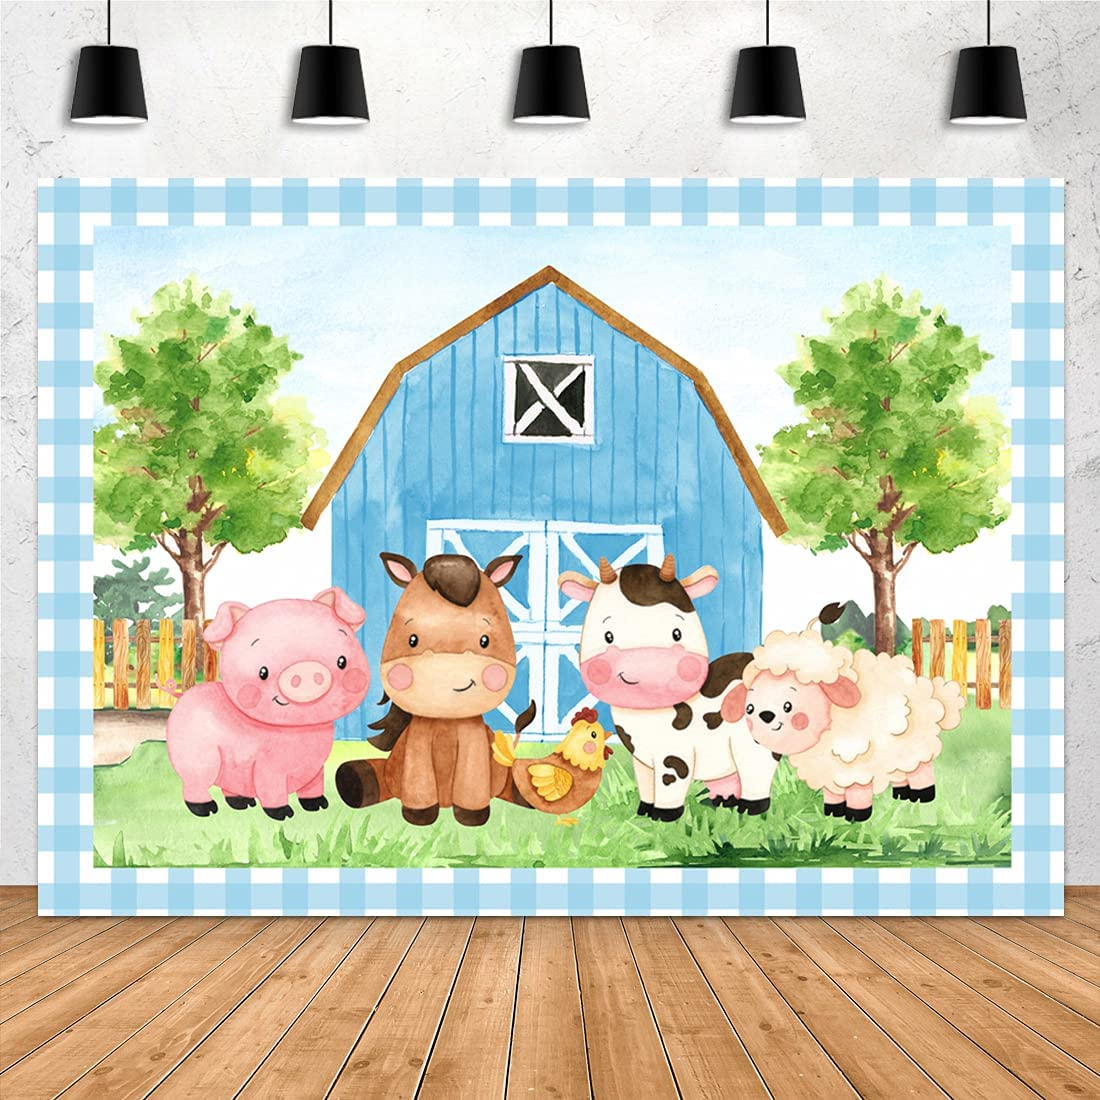 Aperturee 7x5ft Cartoon Farm Animals Photography Backdrop Blue Barn Barnyard Baby Shower Happy Birthday Photography Background Newborn Party Decoration Banner Photo Booth Cake Table Supplies